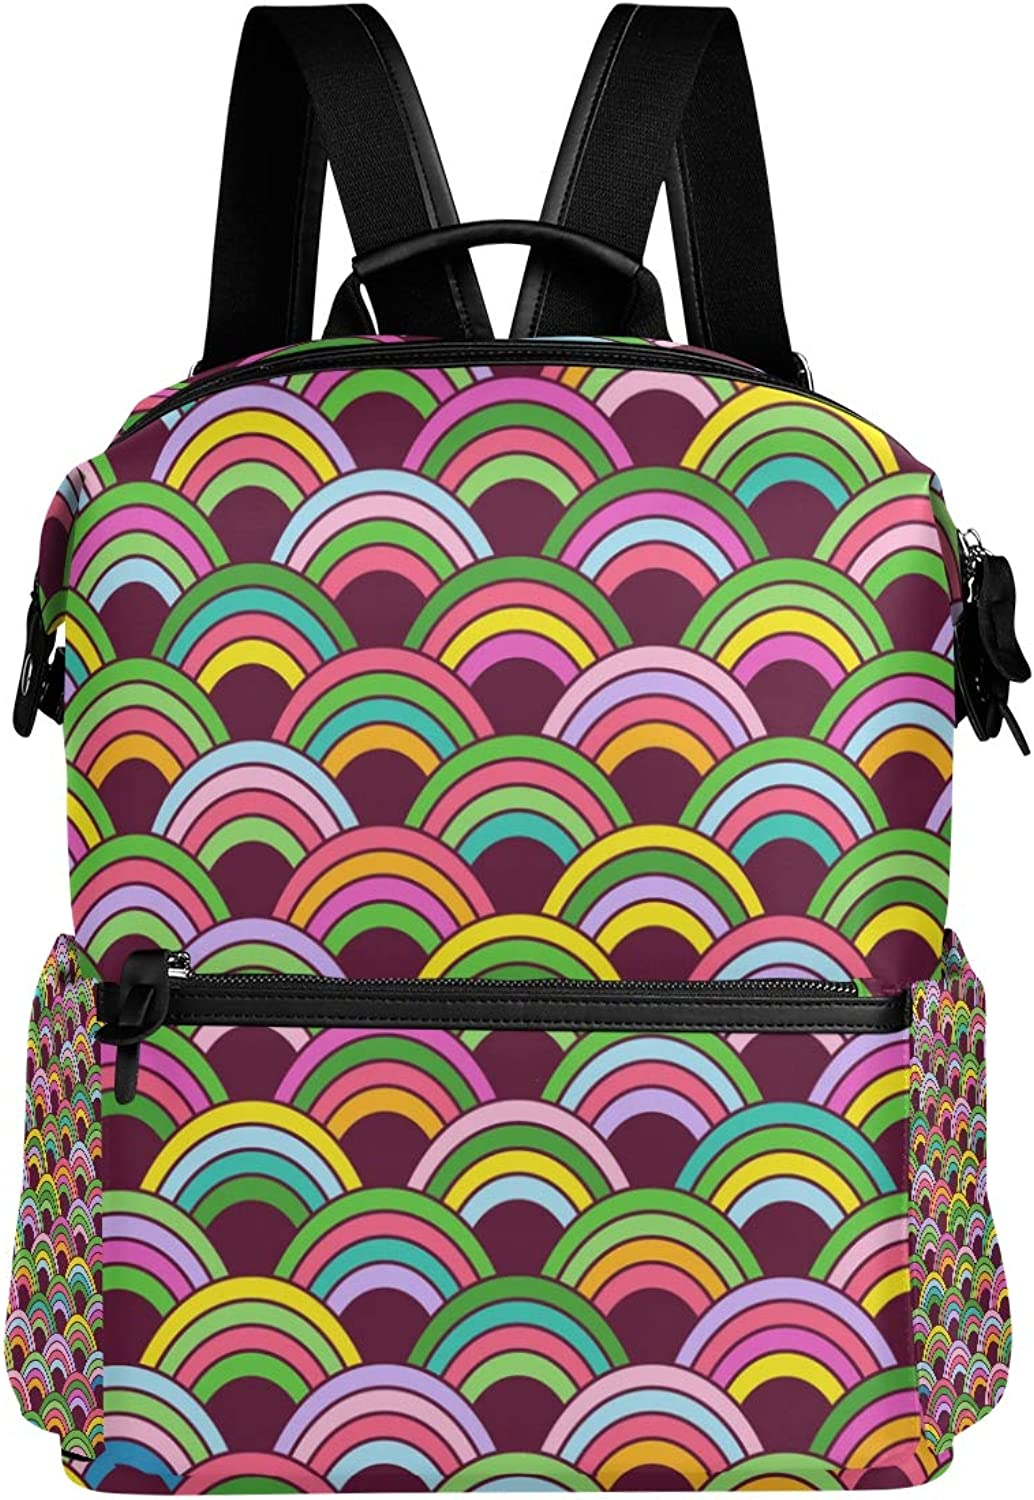 MONTOJ colorful Patterndepositphotos Leather Travel Bag Campus Backpack